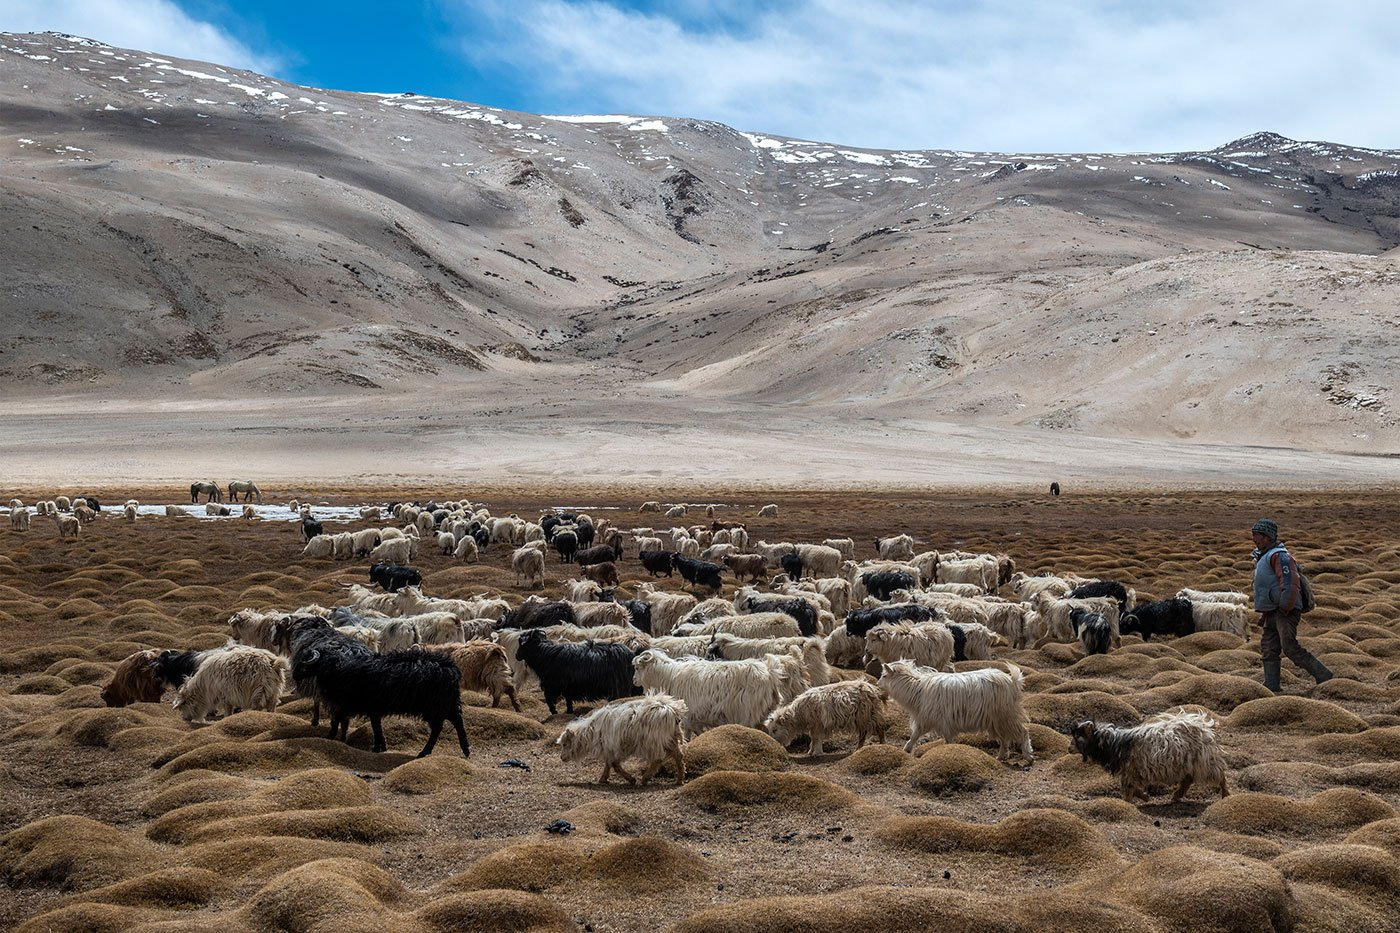 Around 110 kilometres northwest of Hanle, and about 60 kilometres northeast of Karzok village (also called Korzok) at the shore of the Tso Moriri lake, Tsering Nurgu and his herd of goats look for a  patch for grazing after trekking for 3-4 hours